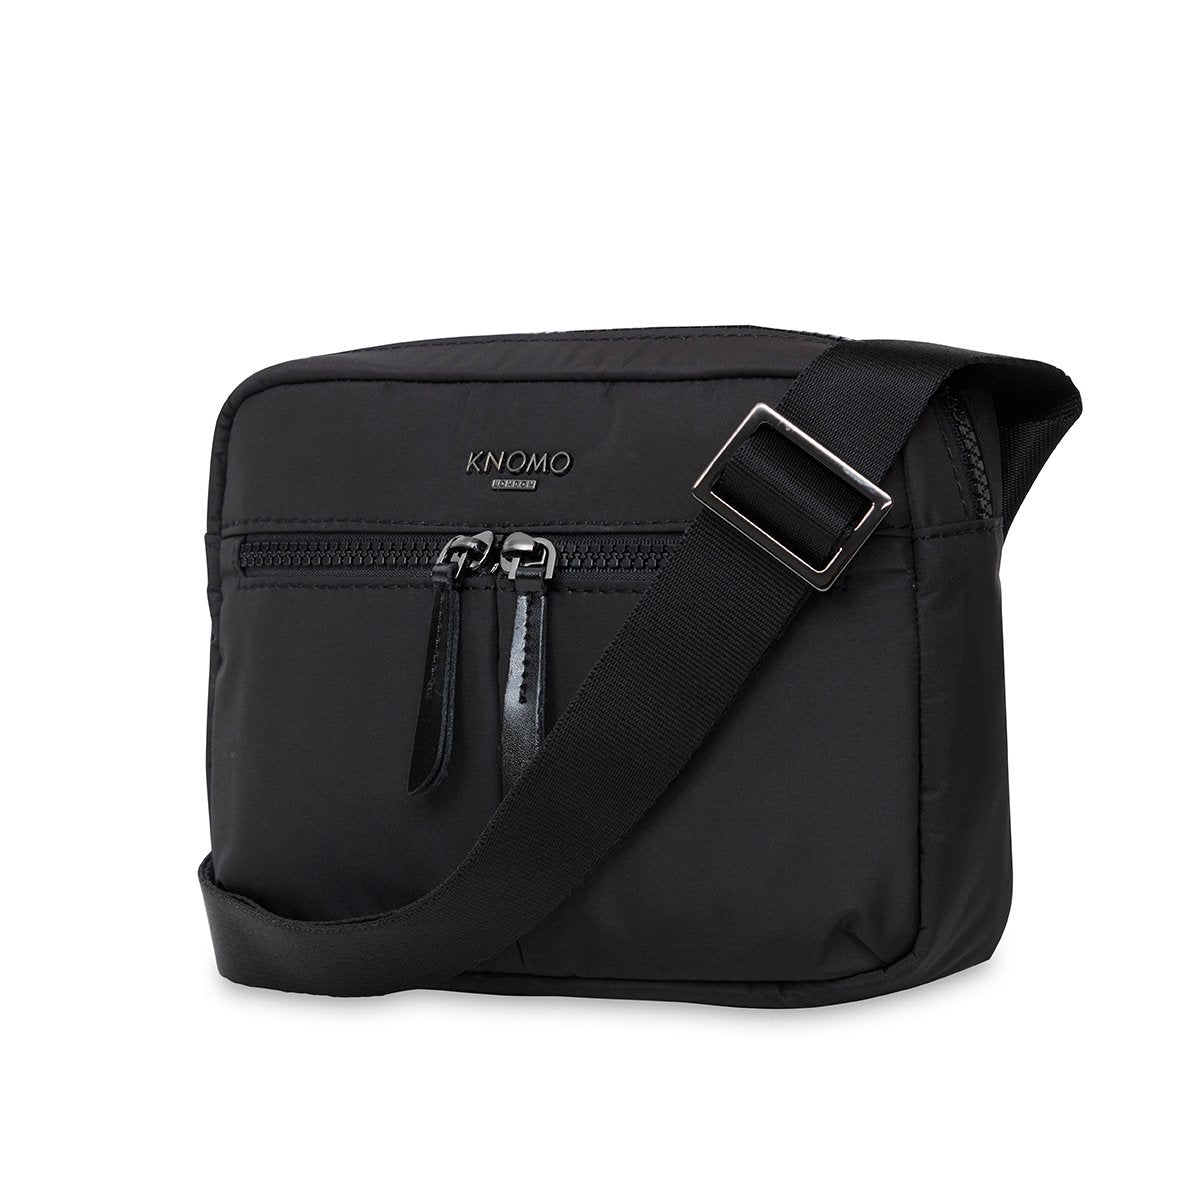 "KNOMO Palermo Ultra Lightweight X-Body Three Quarter View With Strap 10.5"" -  Black 